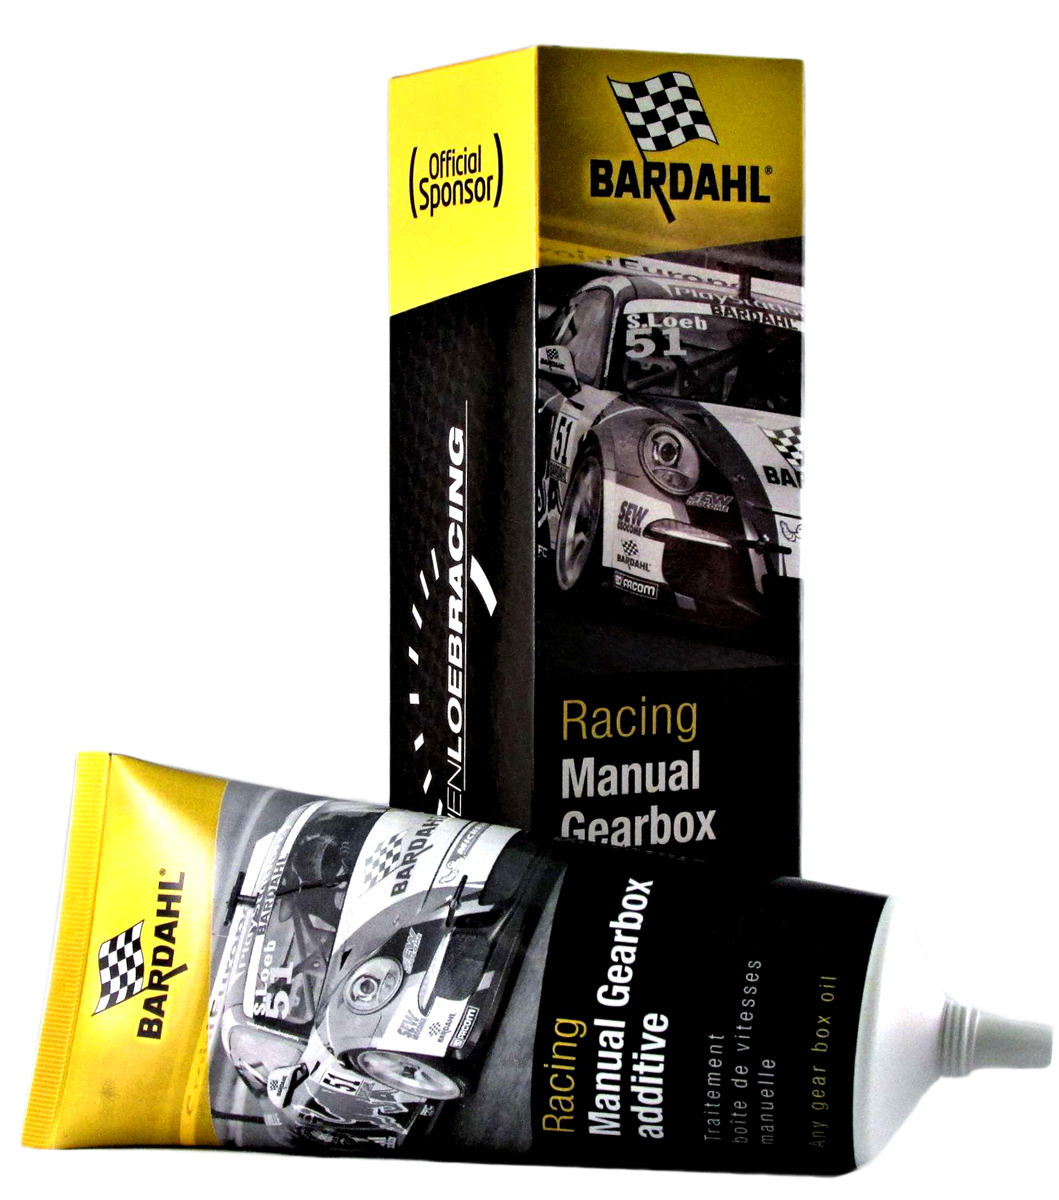 Присадка антифрикционная Bardahl Проспорт. Racing Manual Gear Oil Additive, в МКПП, 150 мл freedman statistics 4e instructors manual